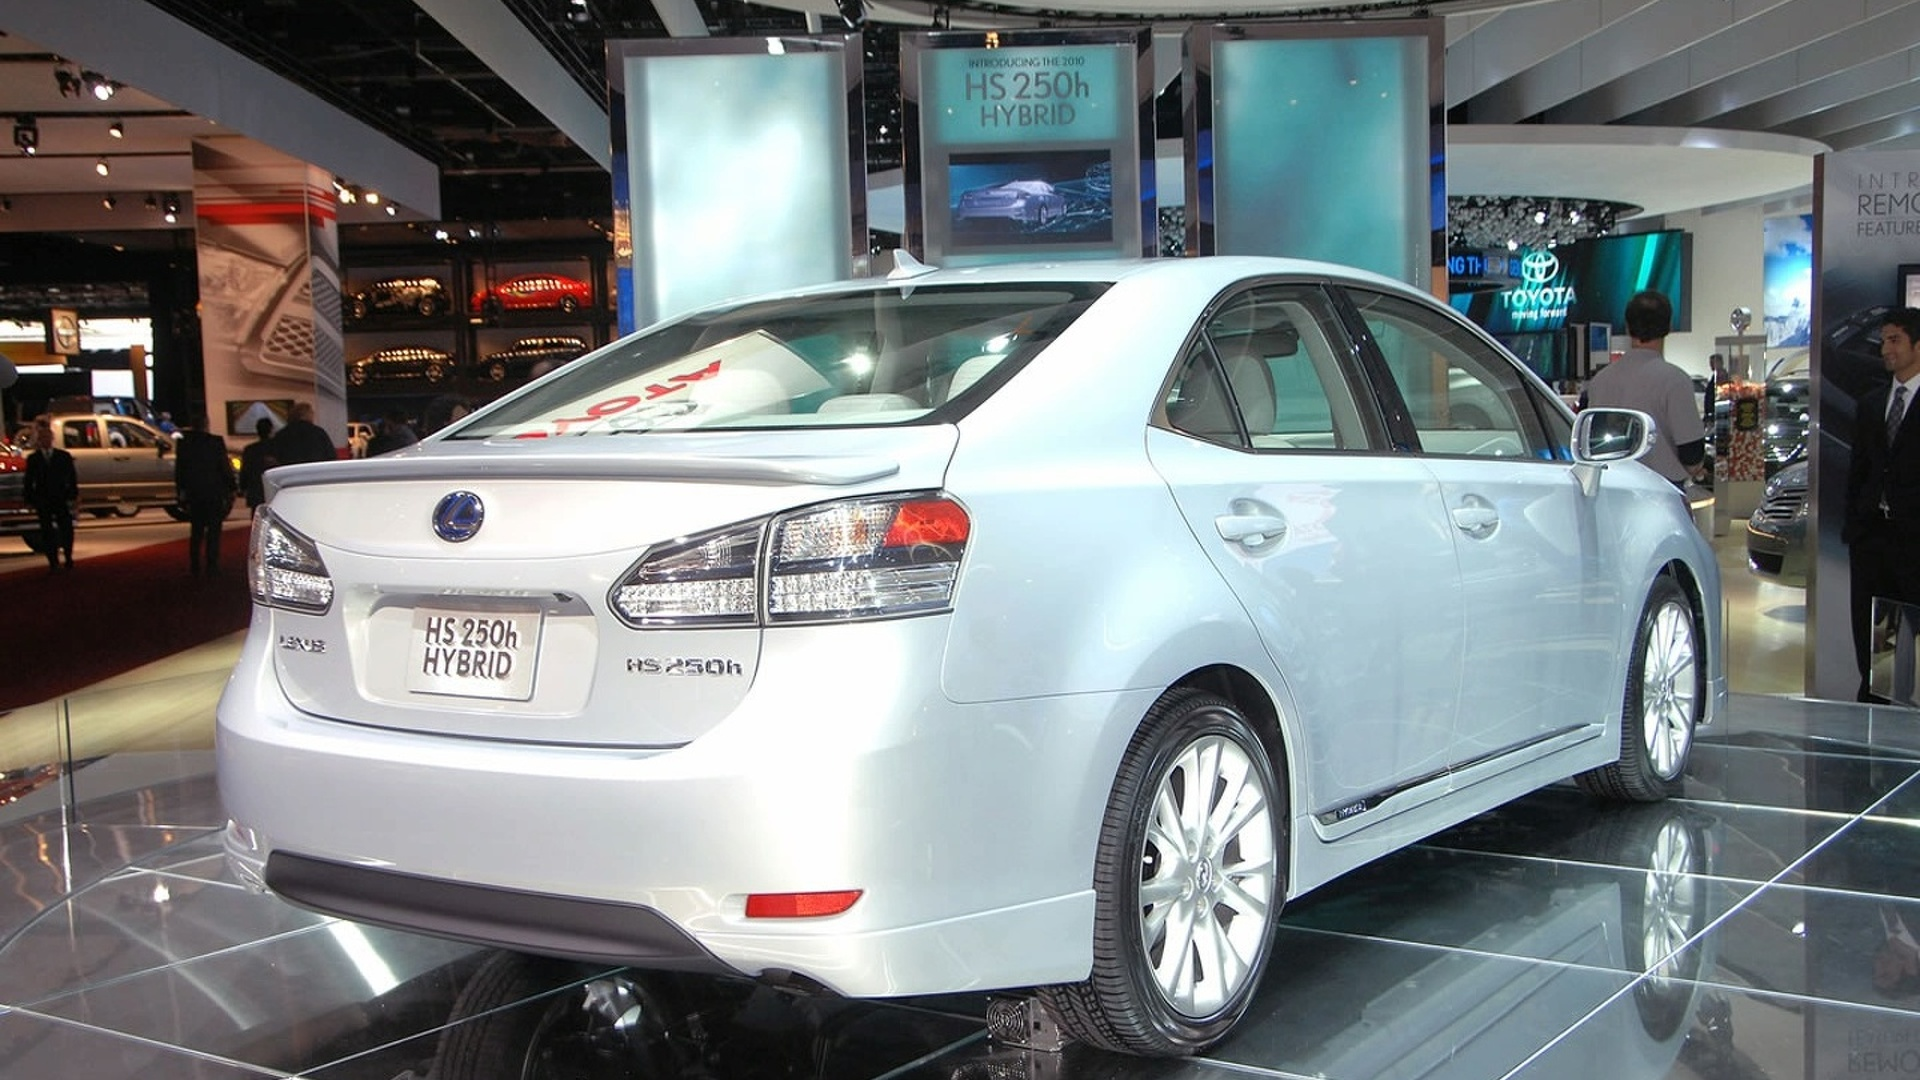 https://icdn-8.motor1.com/images/mgl/0JNLV/s1/2009-160323-2010-lexus-hs-250h-dedicated-hybrid-at-2009-naias1.jpg